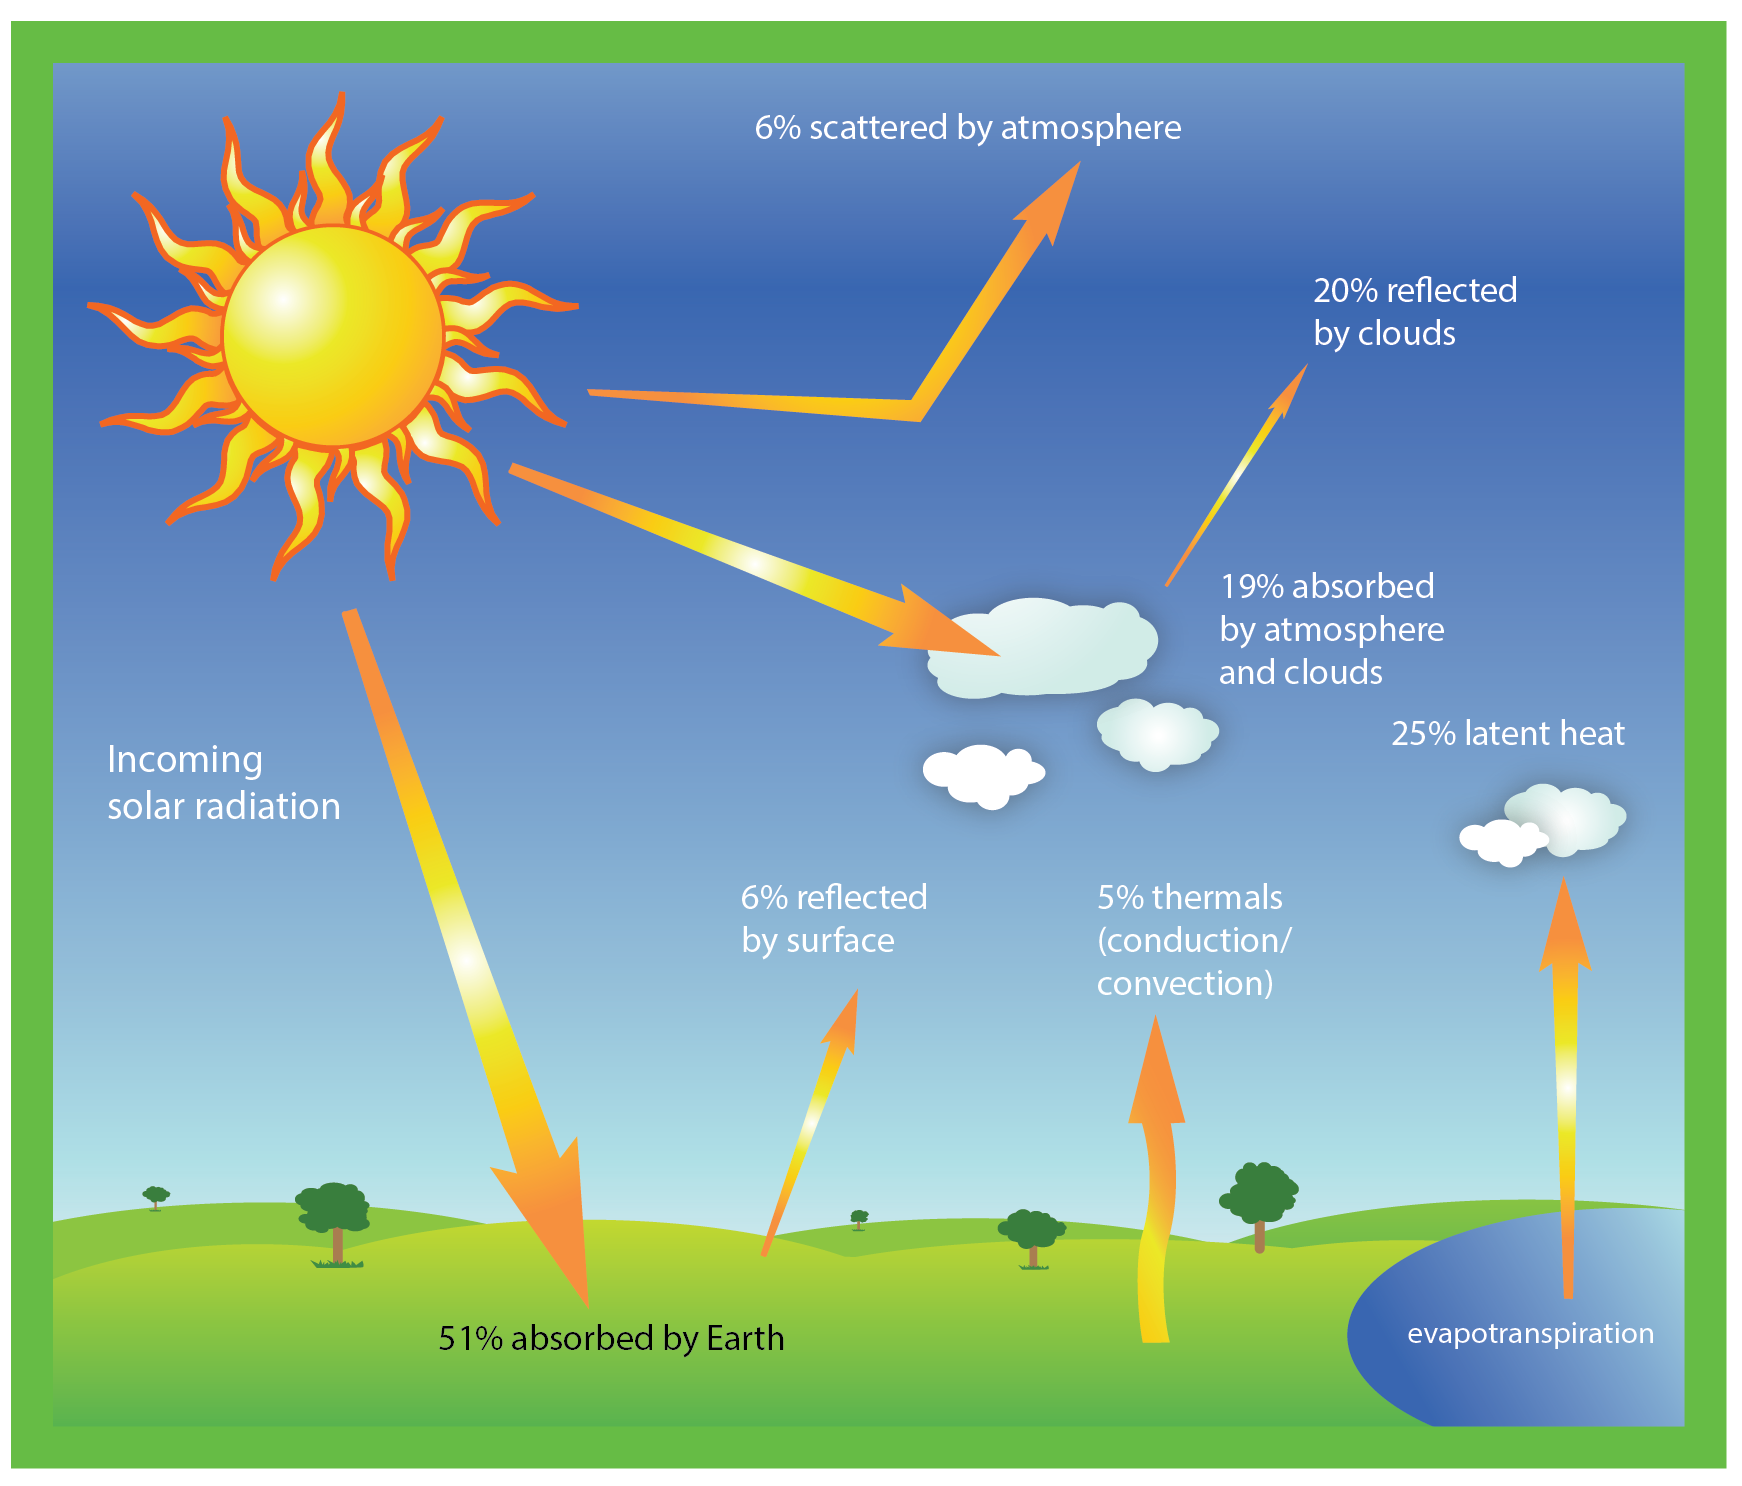 How Is Heat Transferred from the Sun to the Earth?